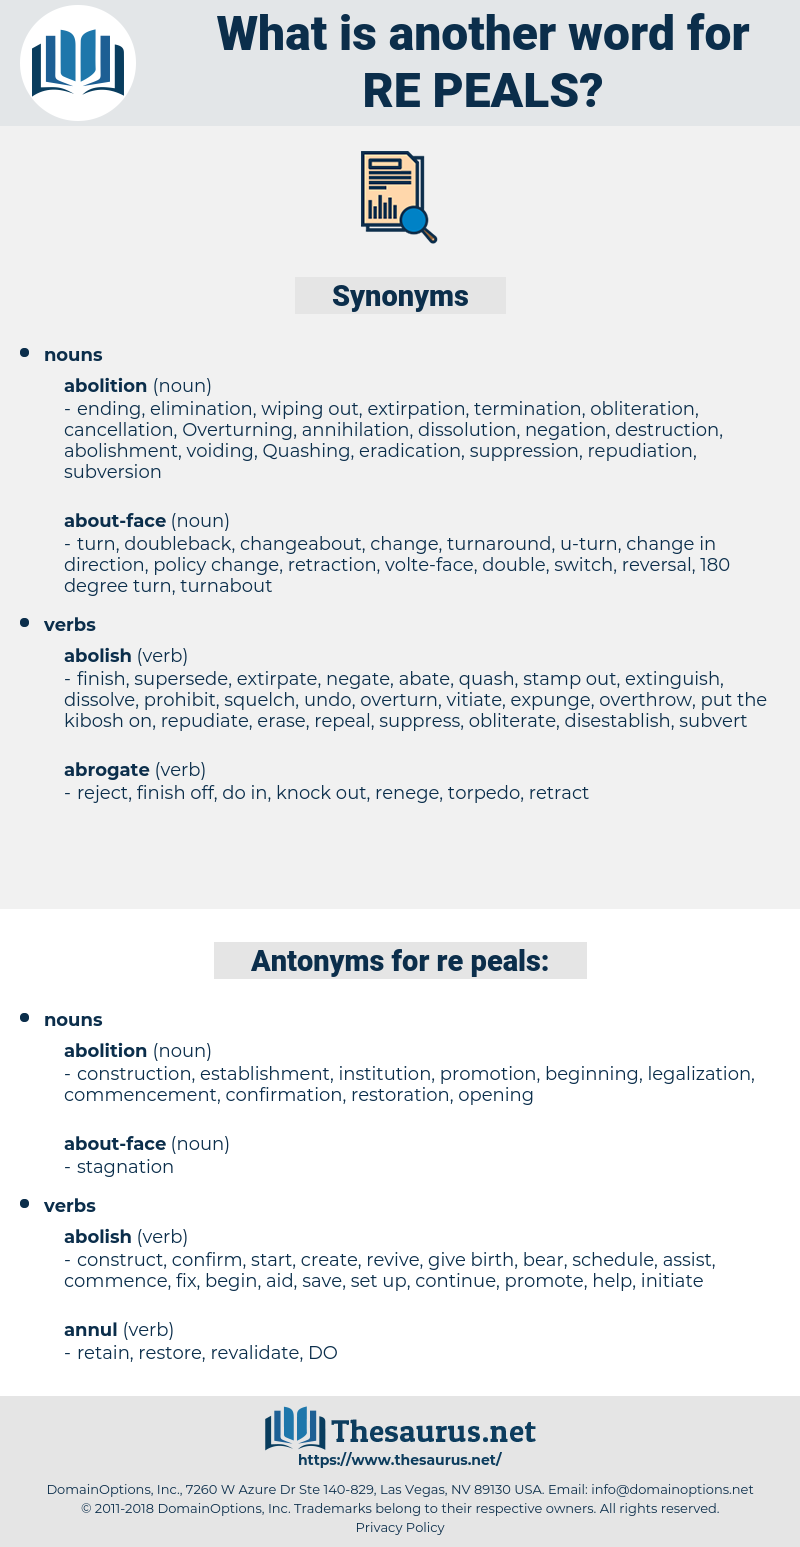 re-peals, synonym re-peals, another word for re-peals, words like re-peals, thesaurus re-peals